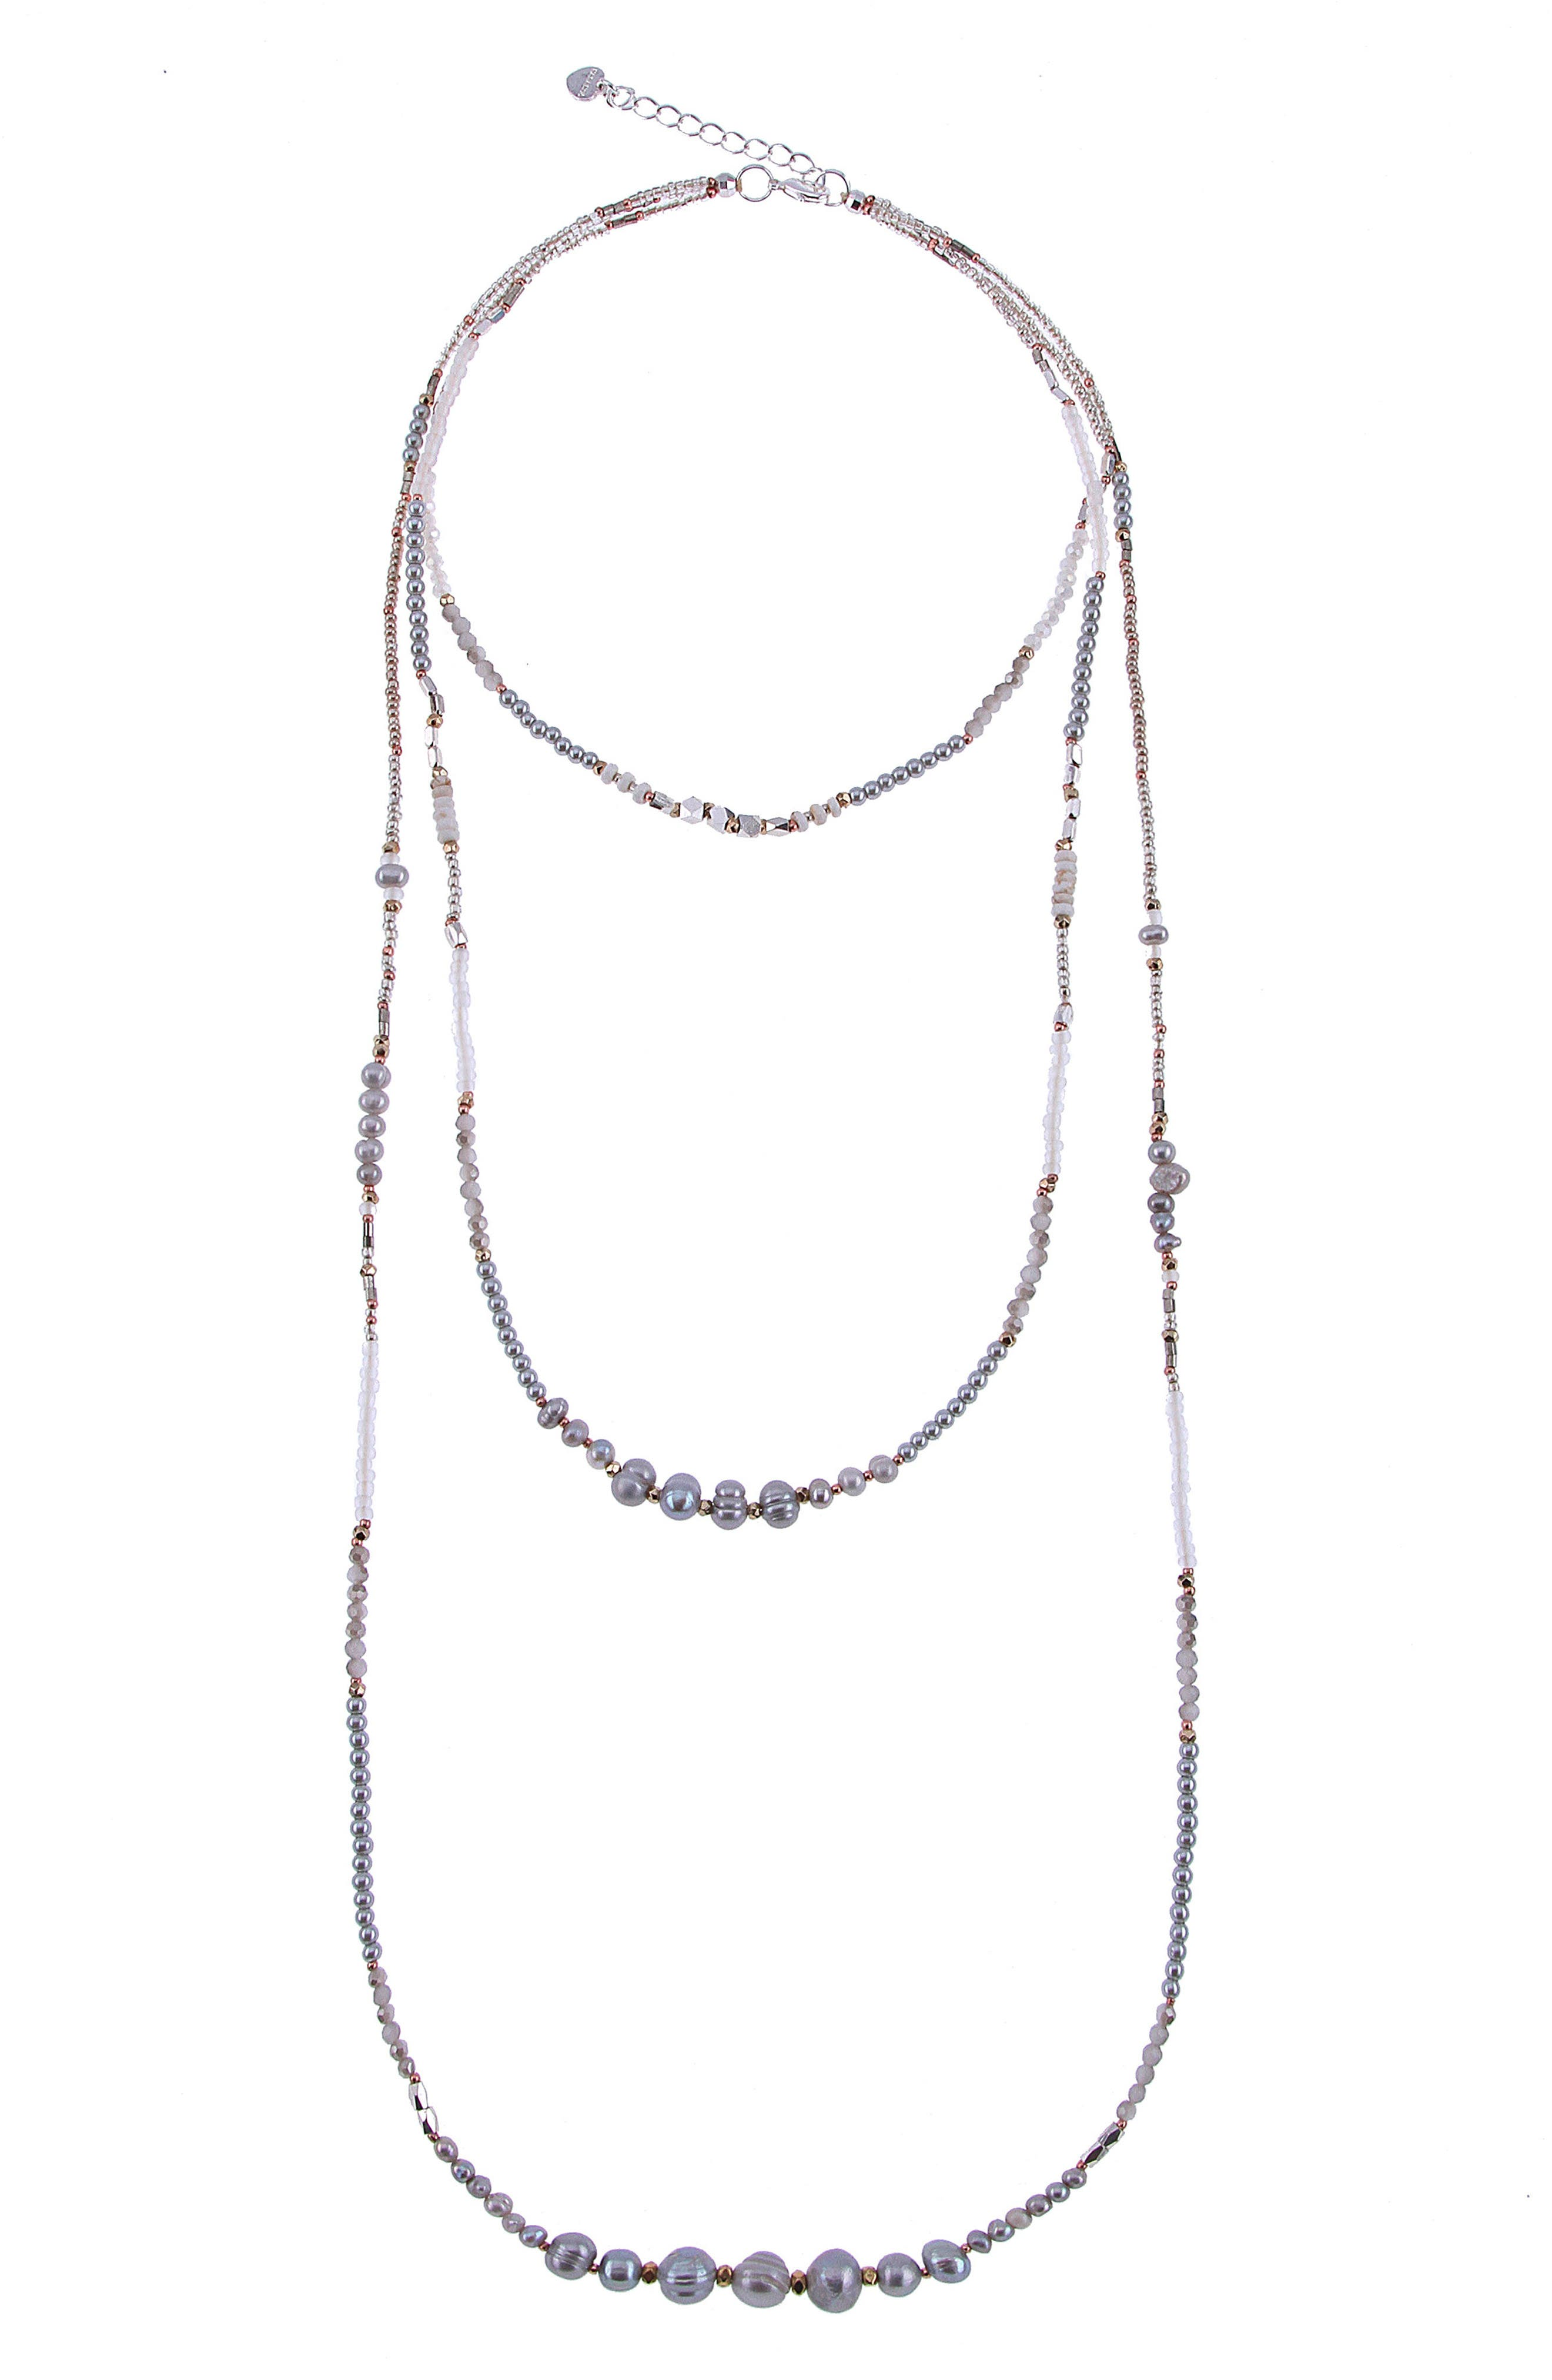 Triple Strand Beaded Freshwater Pearl Necklace,                             Main thumbnail 1, color,                             Silver